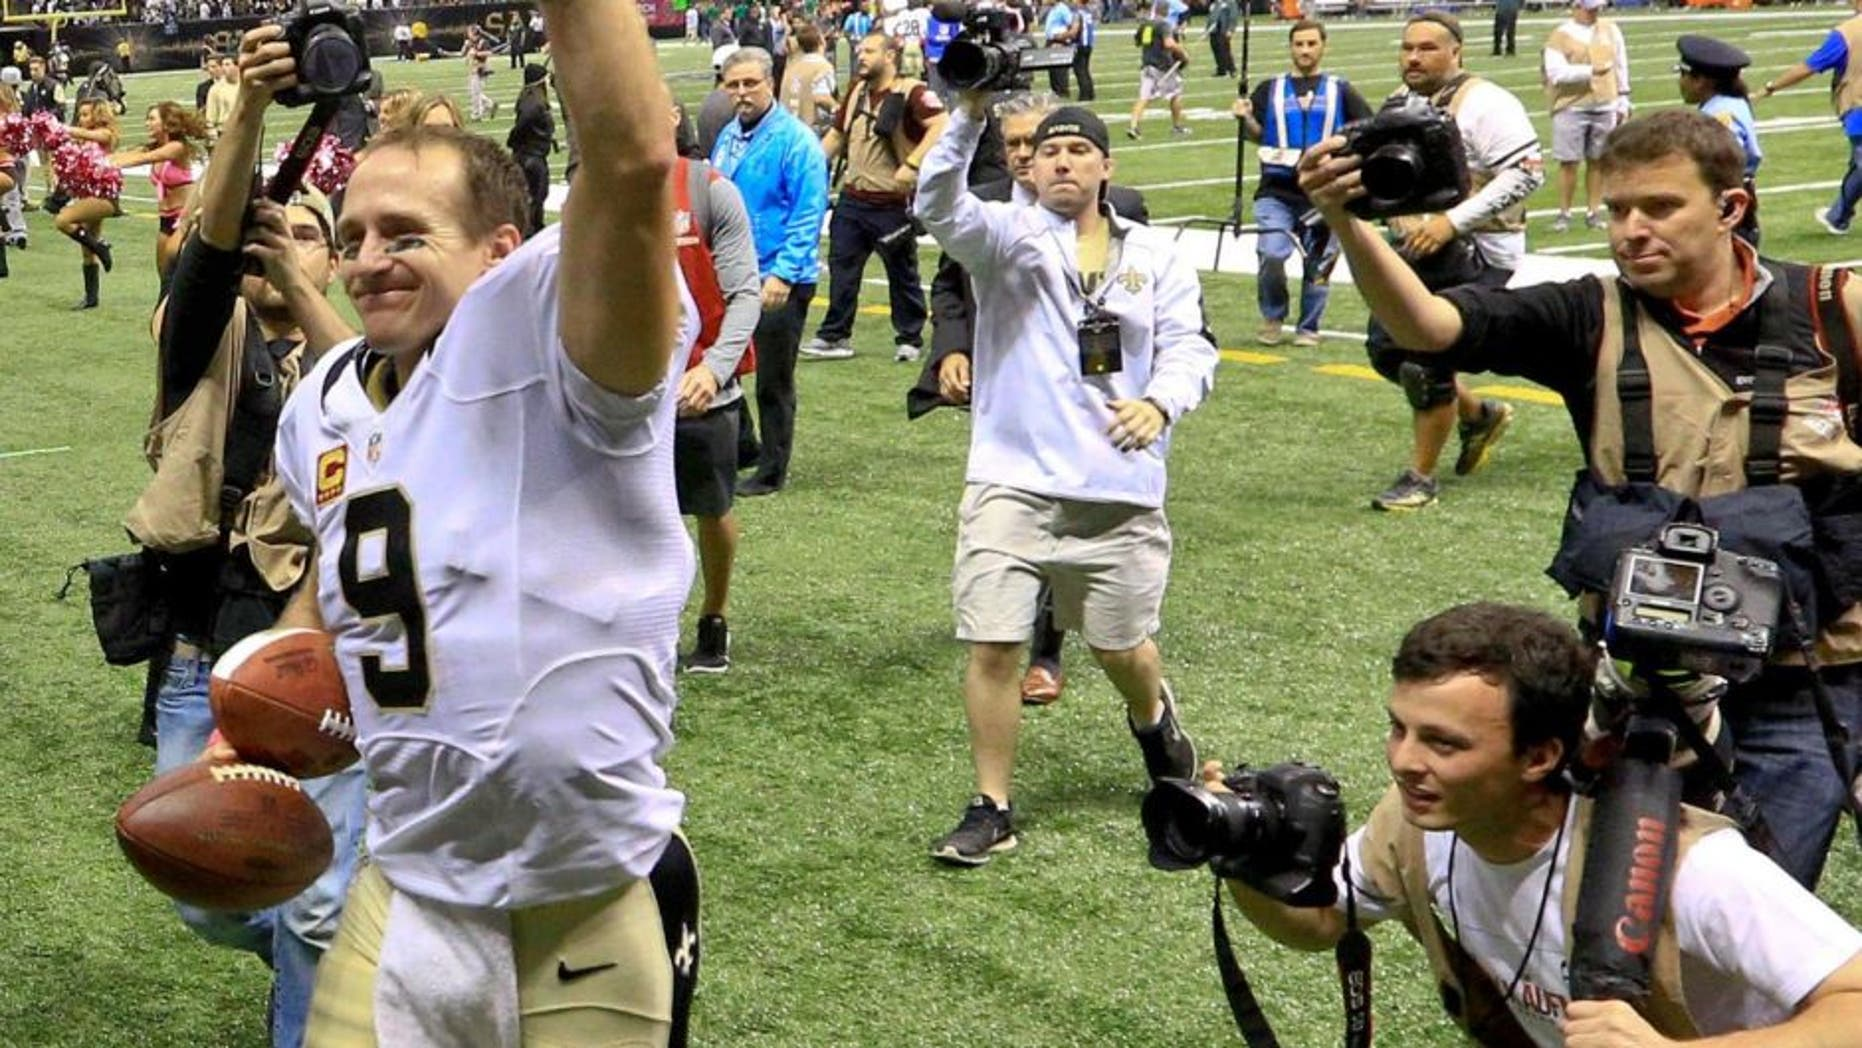 Oct 4, 2015; New Orleans, LA, USA; New Orleans Saints quarterback Drew Brees (9) walks off the field after a 80 yard game winning touchdown pass to running back C.J. Spiller (not pictured) during overtime against the Dallas Cowboys at the Mercedes-Benz Superdome. The Saints won 26-20. The touchdown pass by Brees was the 400th touchdown pass of his career. Mandatory Credit: Derick E. Hingle-USA TODAY Sports